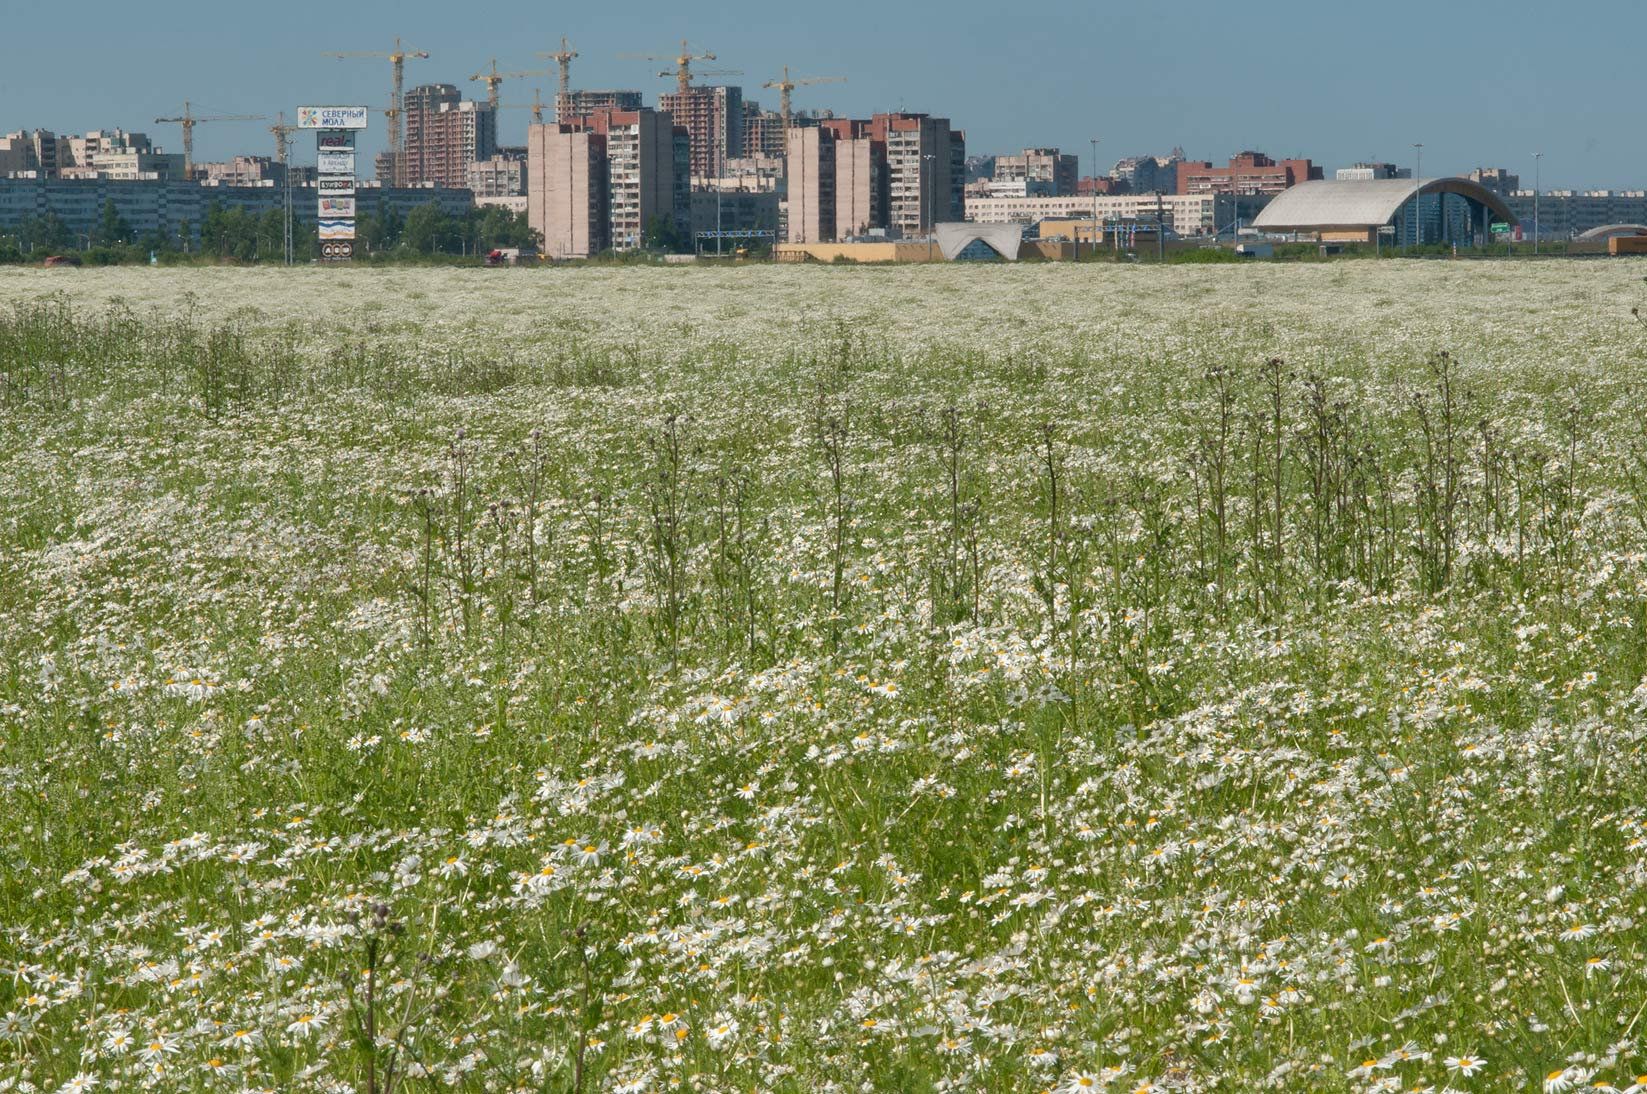 Field of scentless false mayweed (false chamomile...near Parnas. St.Petersburg, Russia